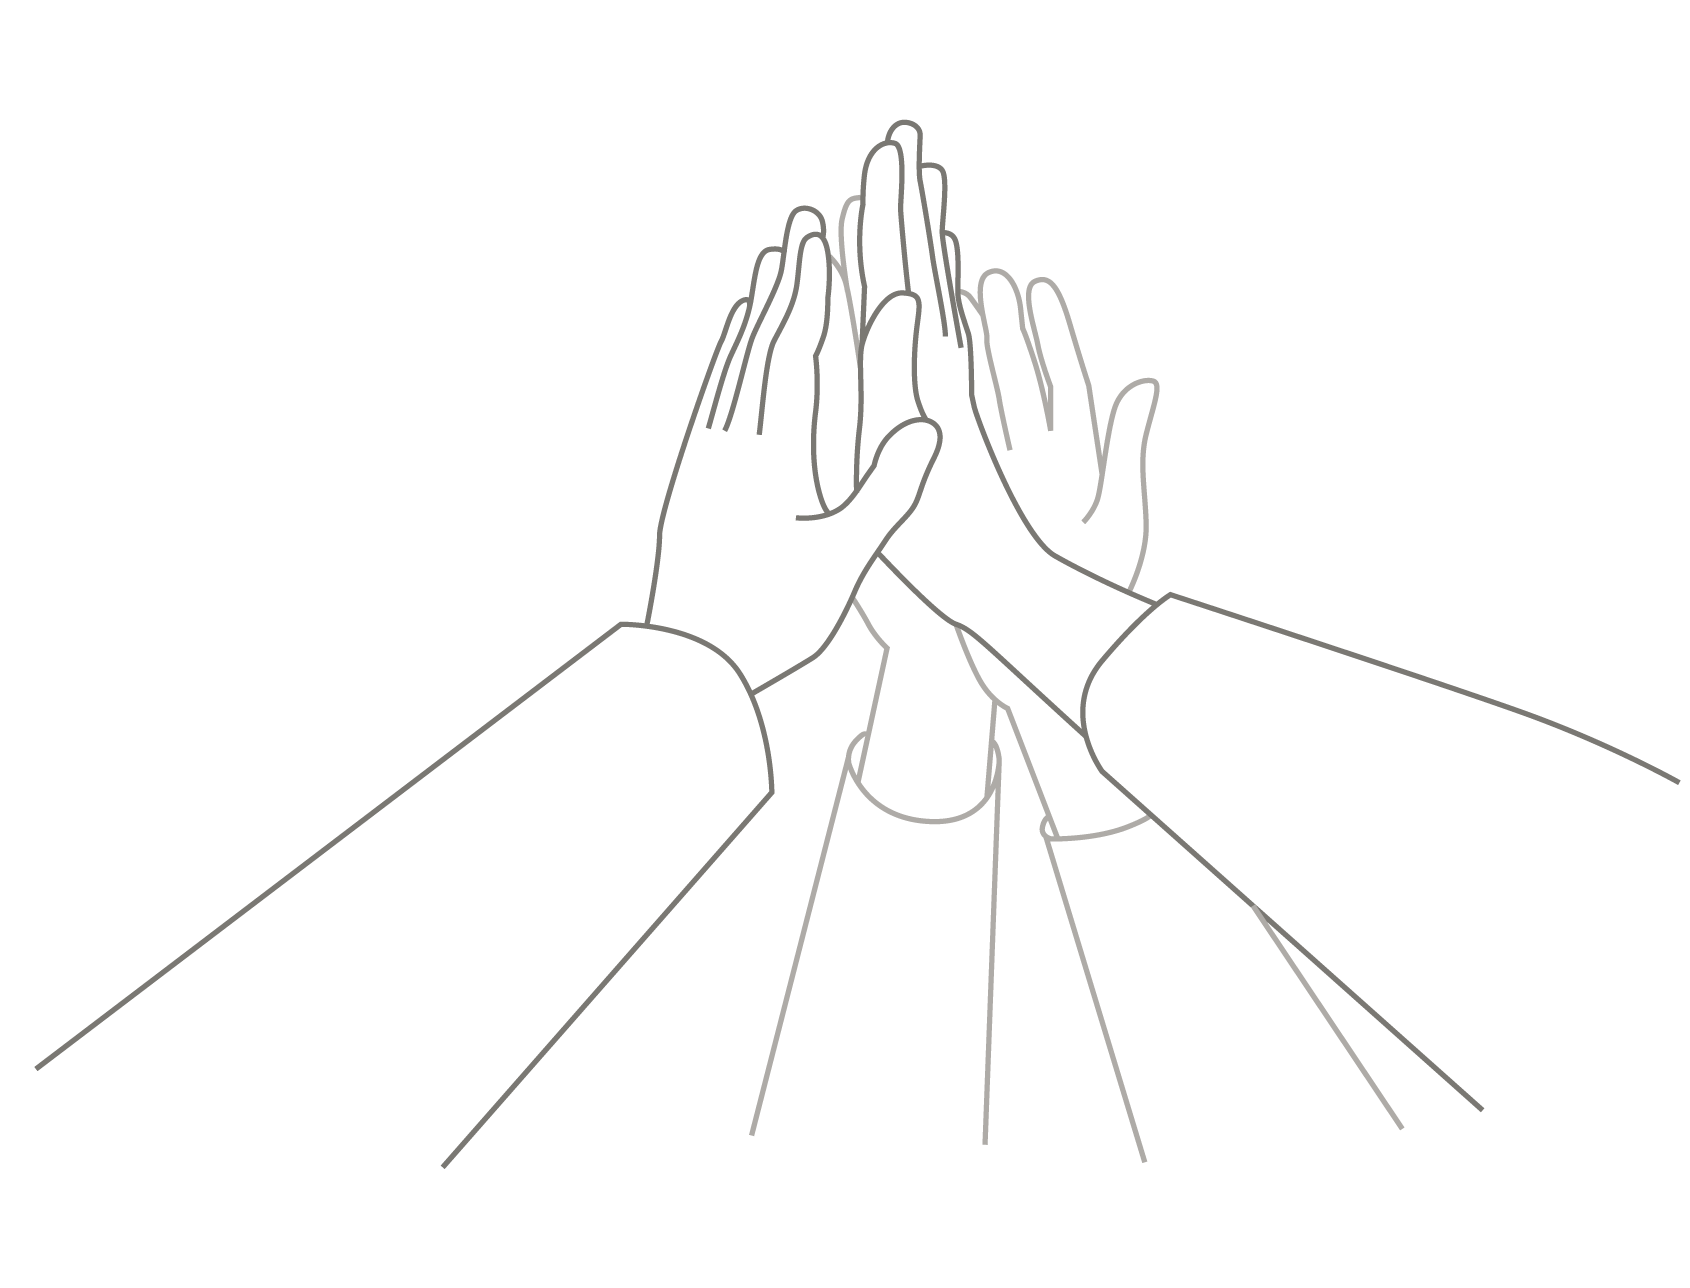 Four hands meeting in a high five in celebration of success